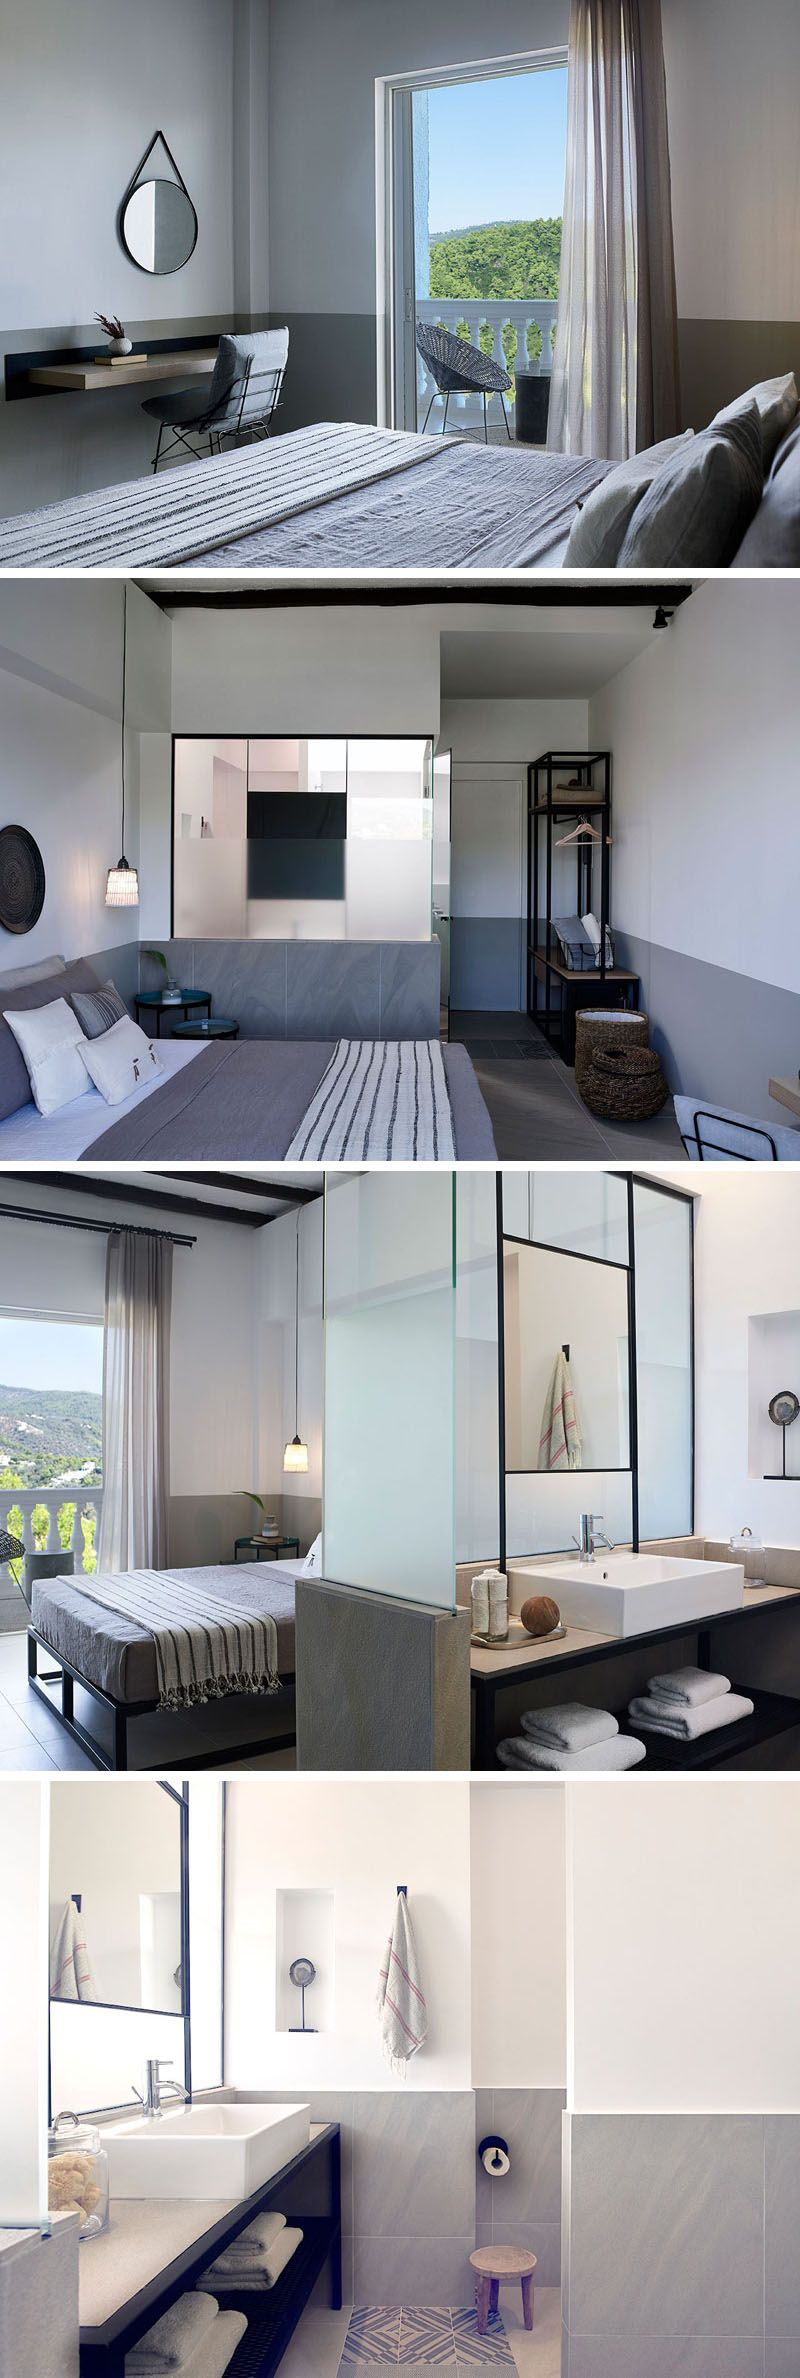 Hotel Room Decorating Ideas: Skiathos Blu Is A Greek Hotel That Puts A Contemporary